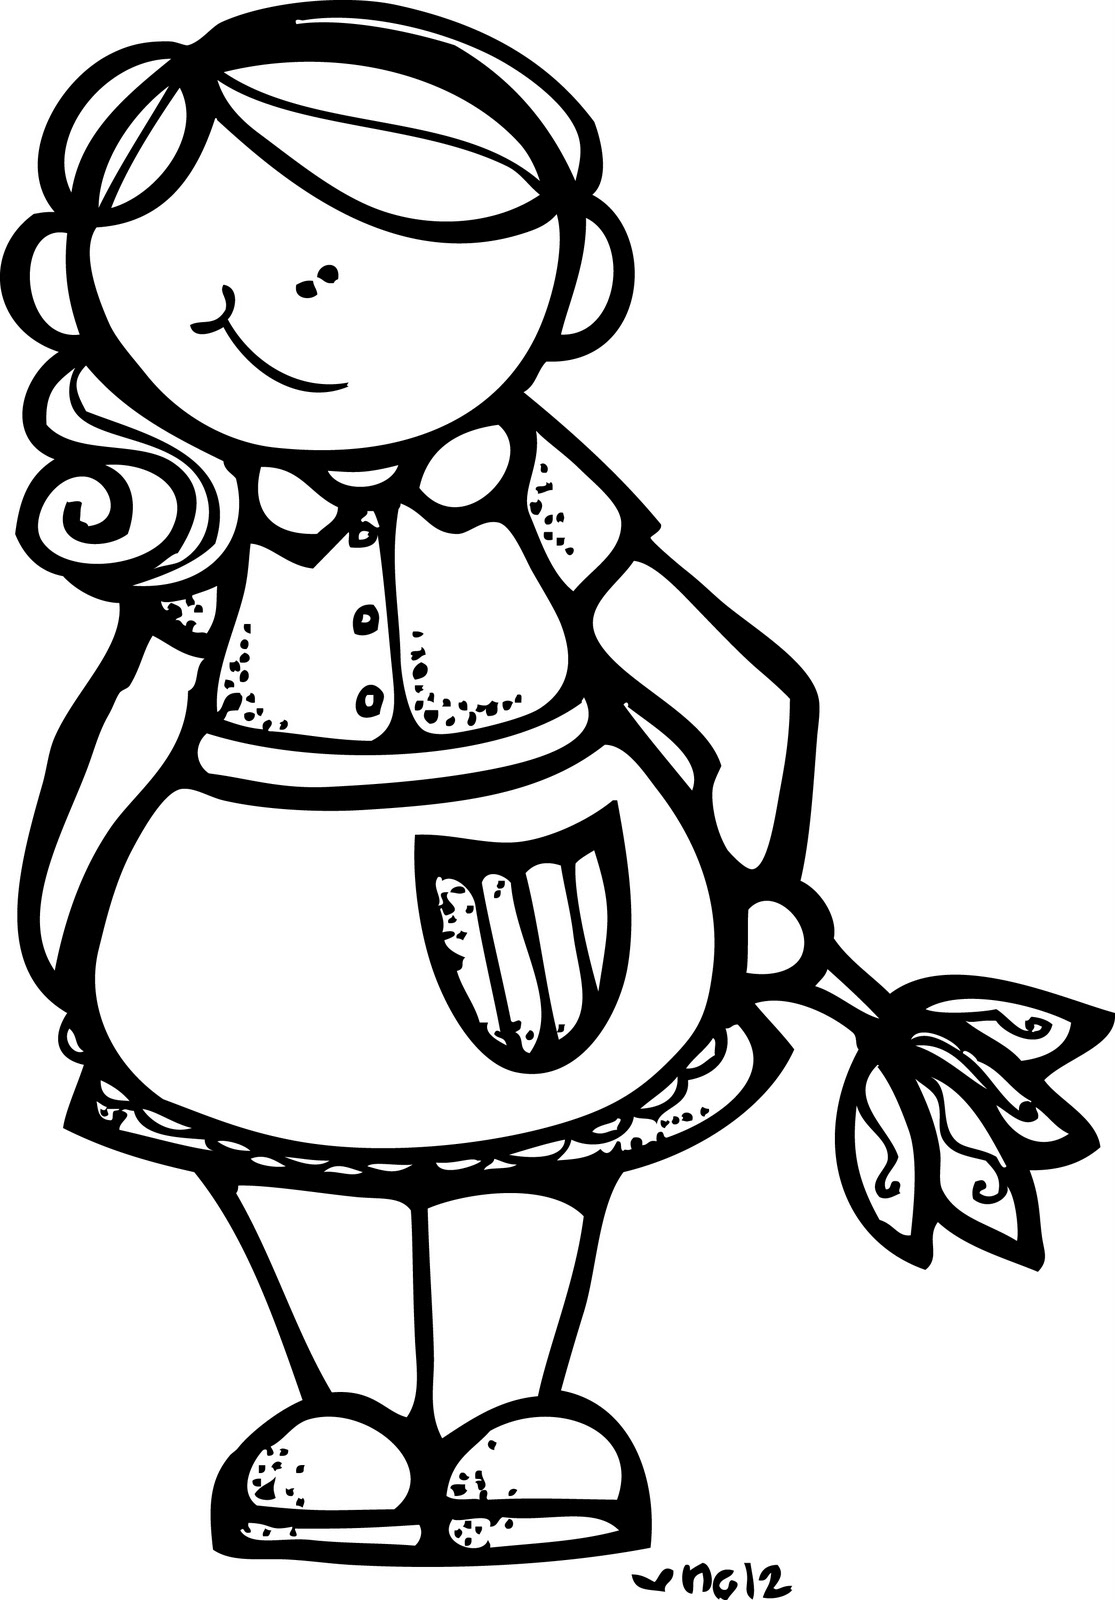 Housekeeping clipart black and white.